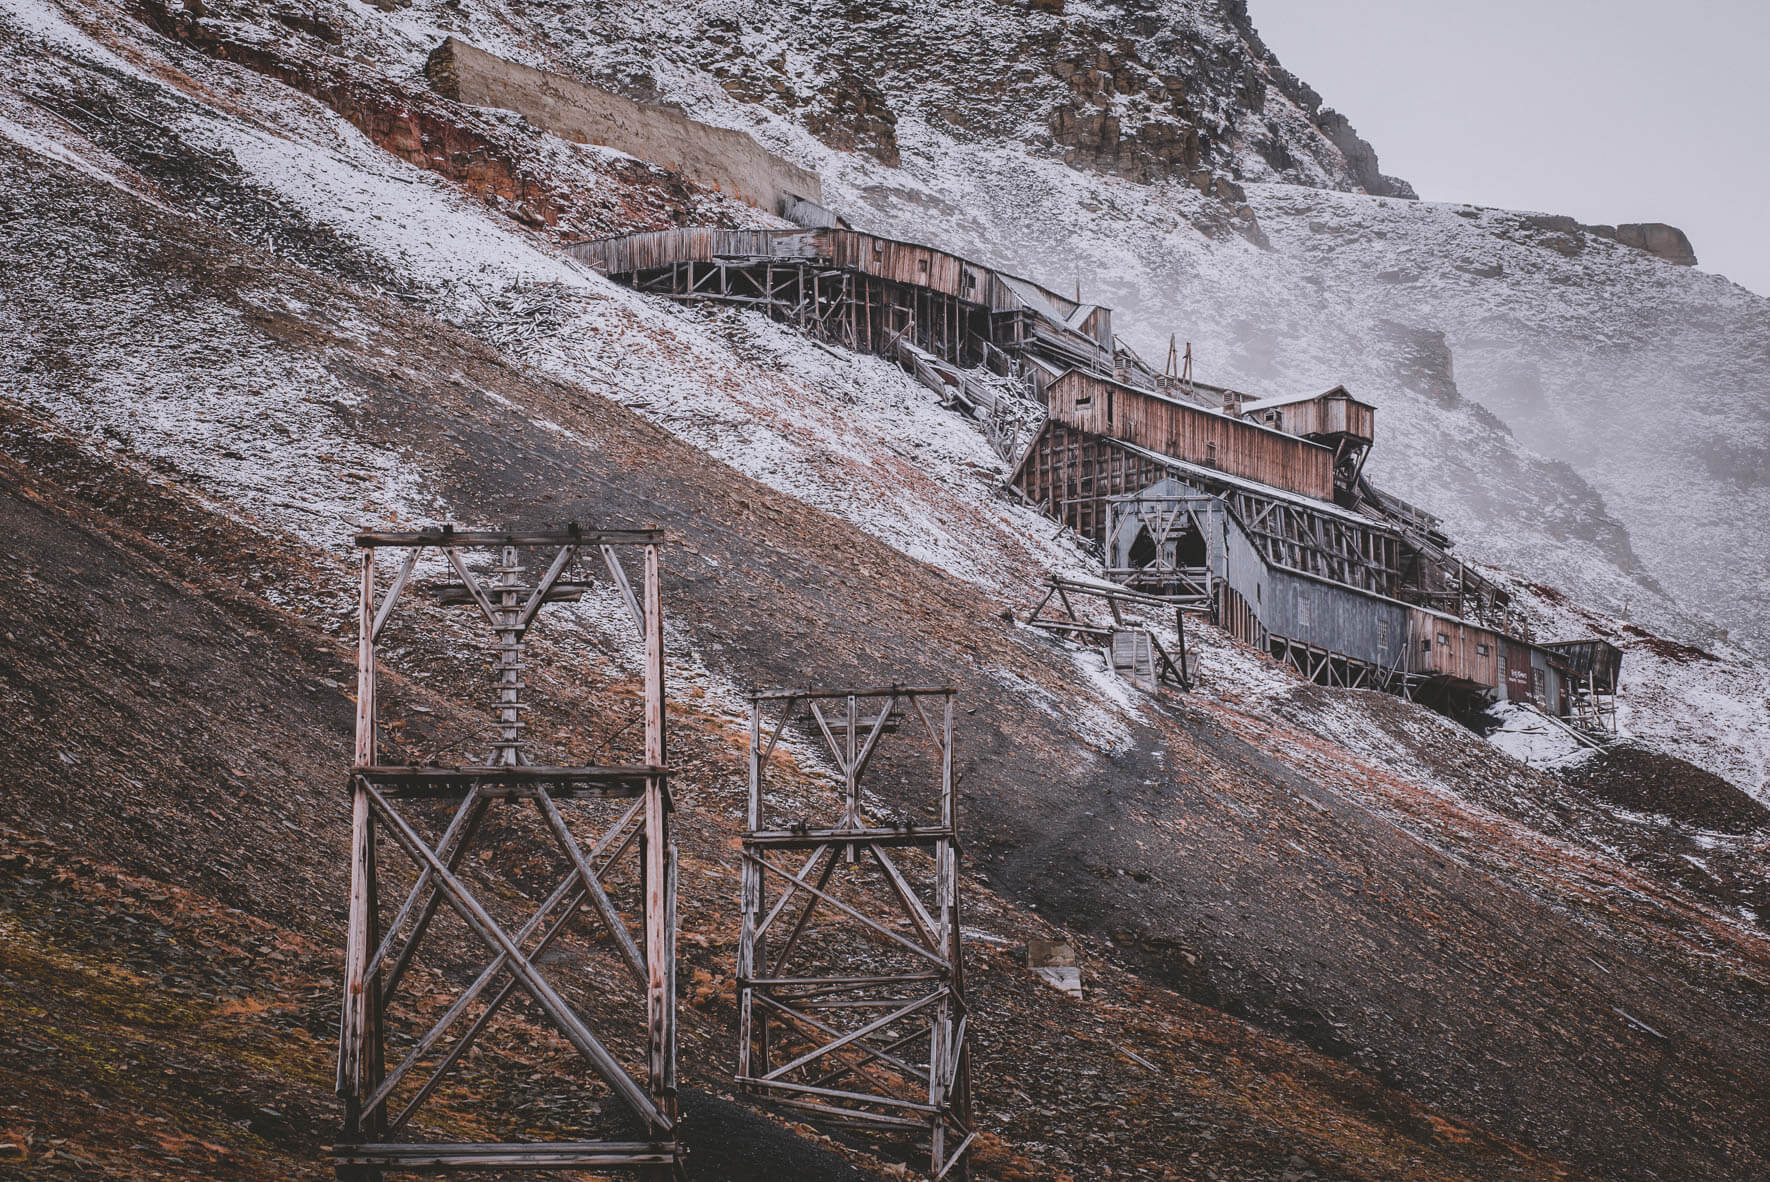 Buildings of abandoned coal mine #2 in Longyearbyen, Svalbard (Norway)